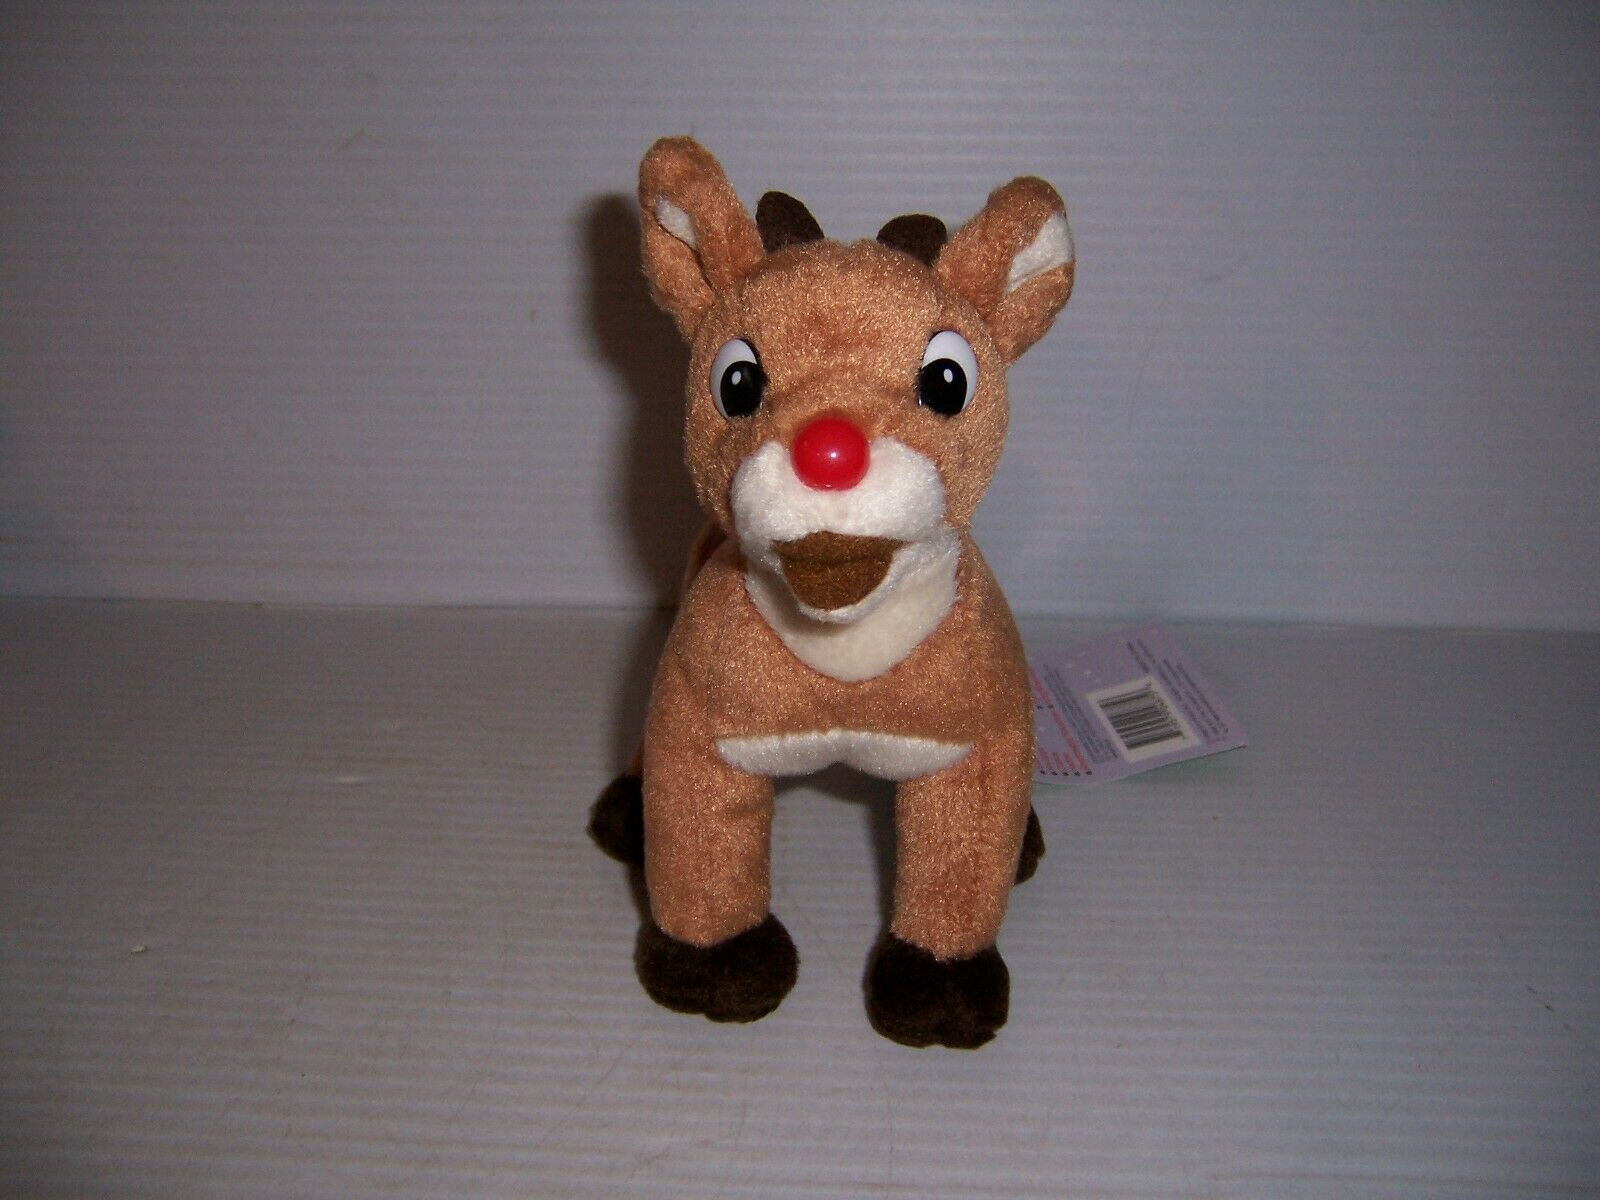 1998 Stuffins CVS Island of Misfit Toys Rudolph Red Nose Reindeer 7  Plush NWT